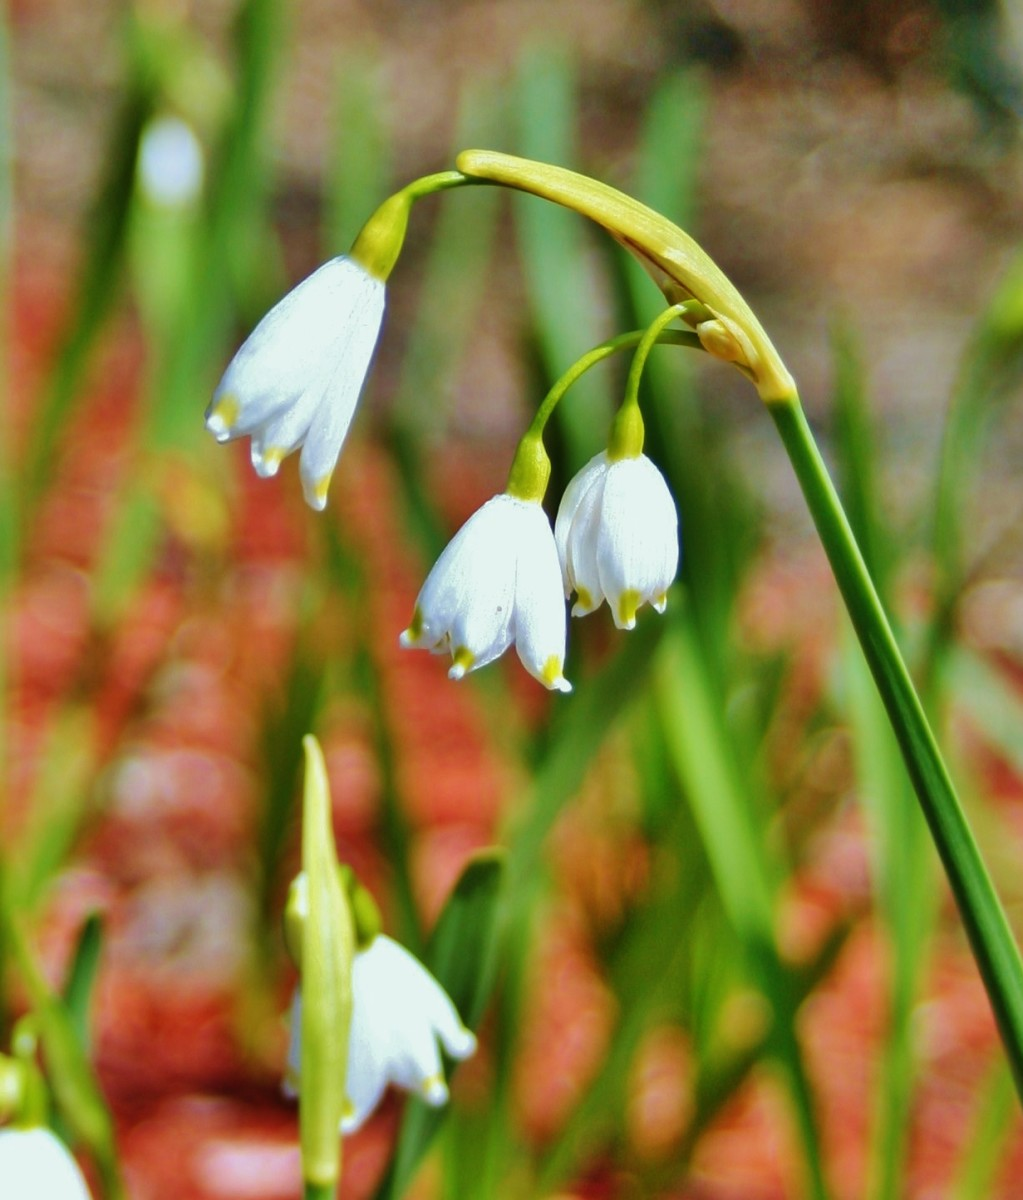 Spring snowflakes (Leucojum vernum) bloom in both winter & spring.